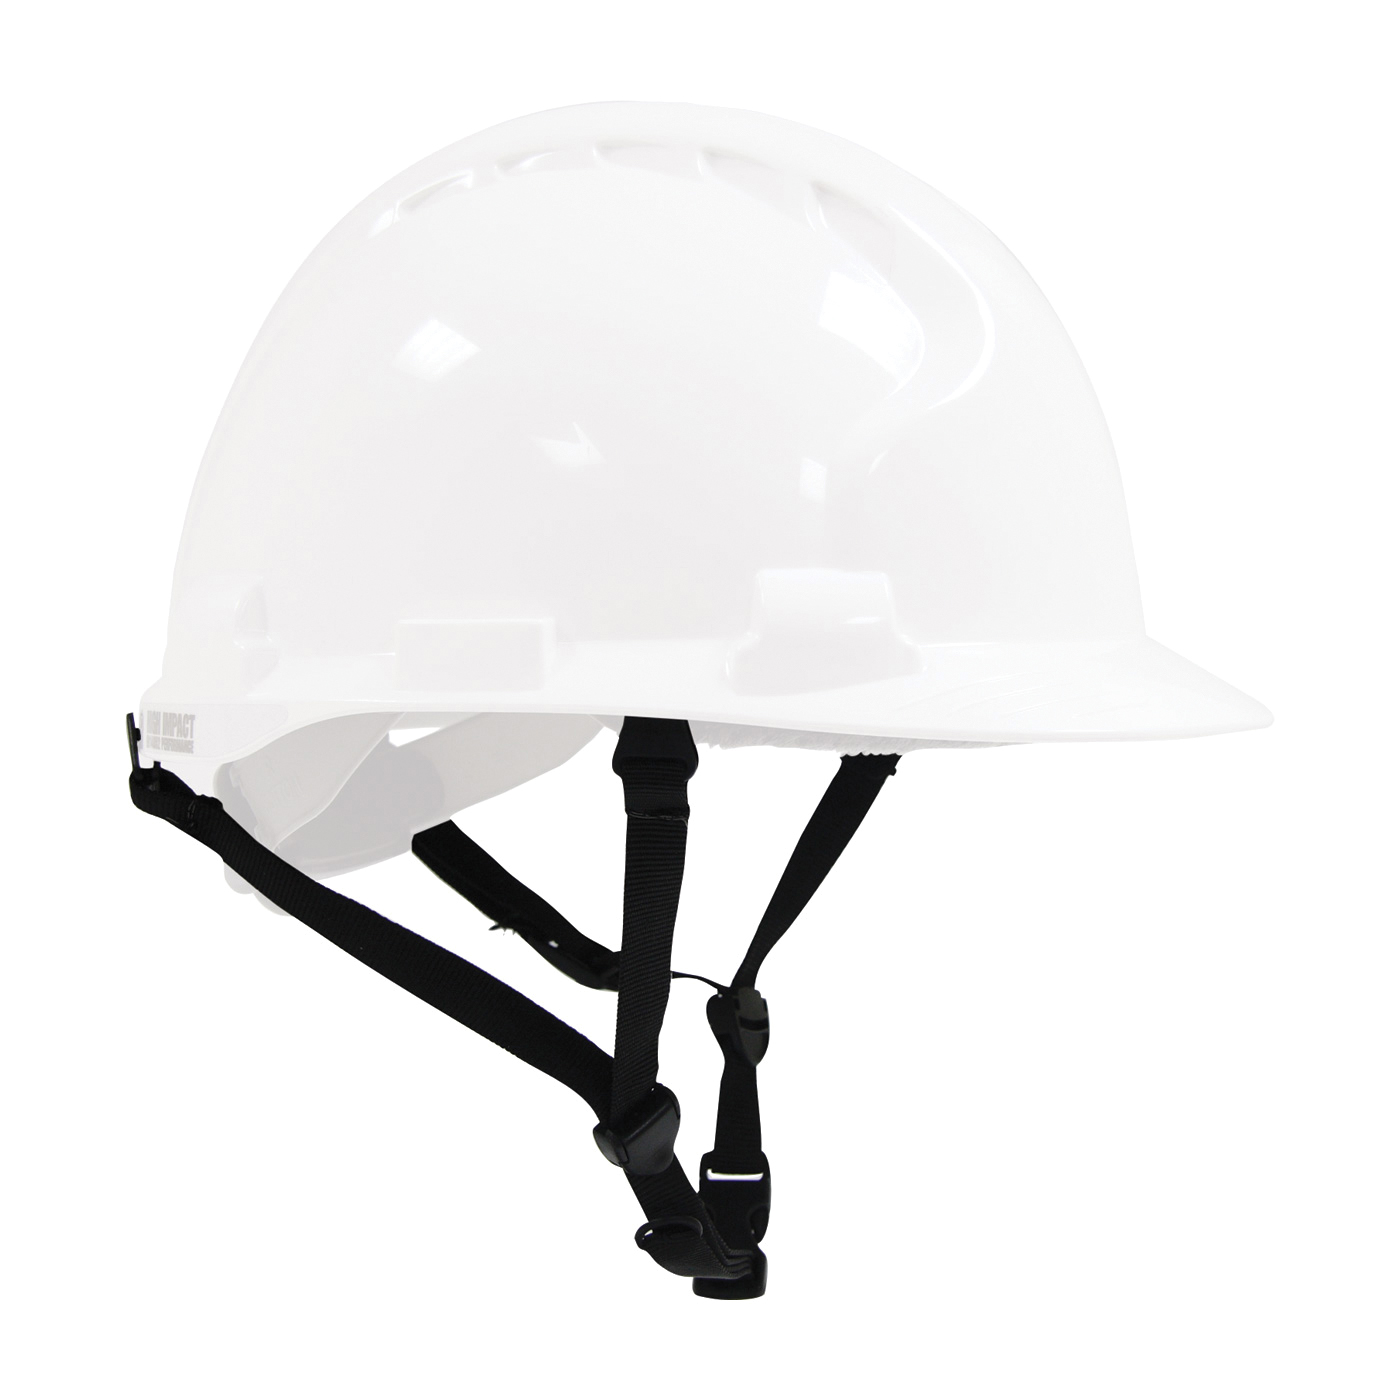 JSP® 281-CS-4PT 4-Point Standard Chin Strap With (4) Clips, 4 Mounting Points, Black, For Use With JSP® Evolution® 6100 Hard Hats